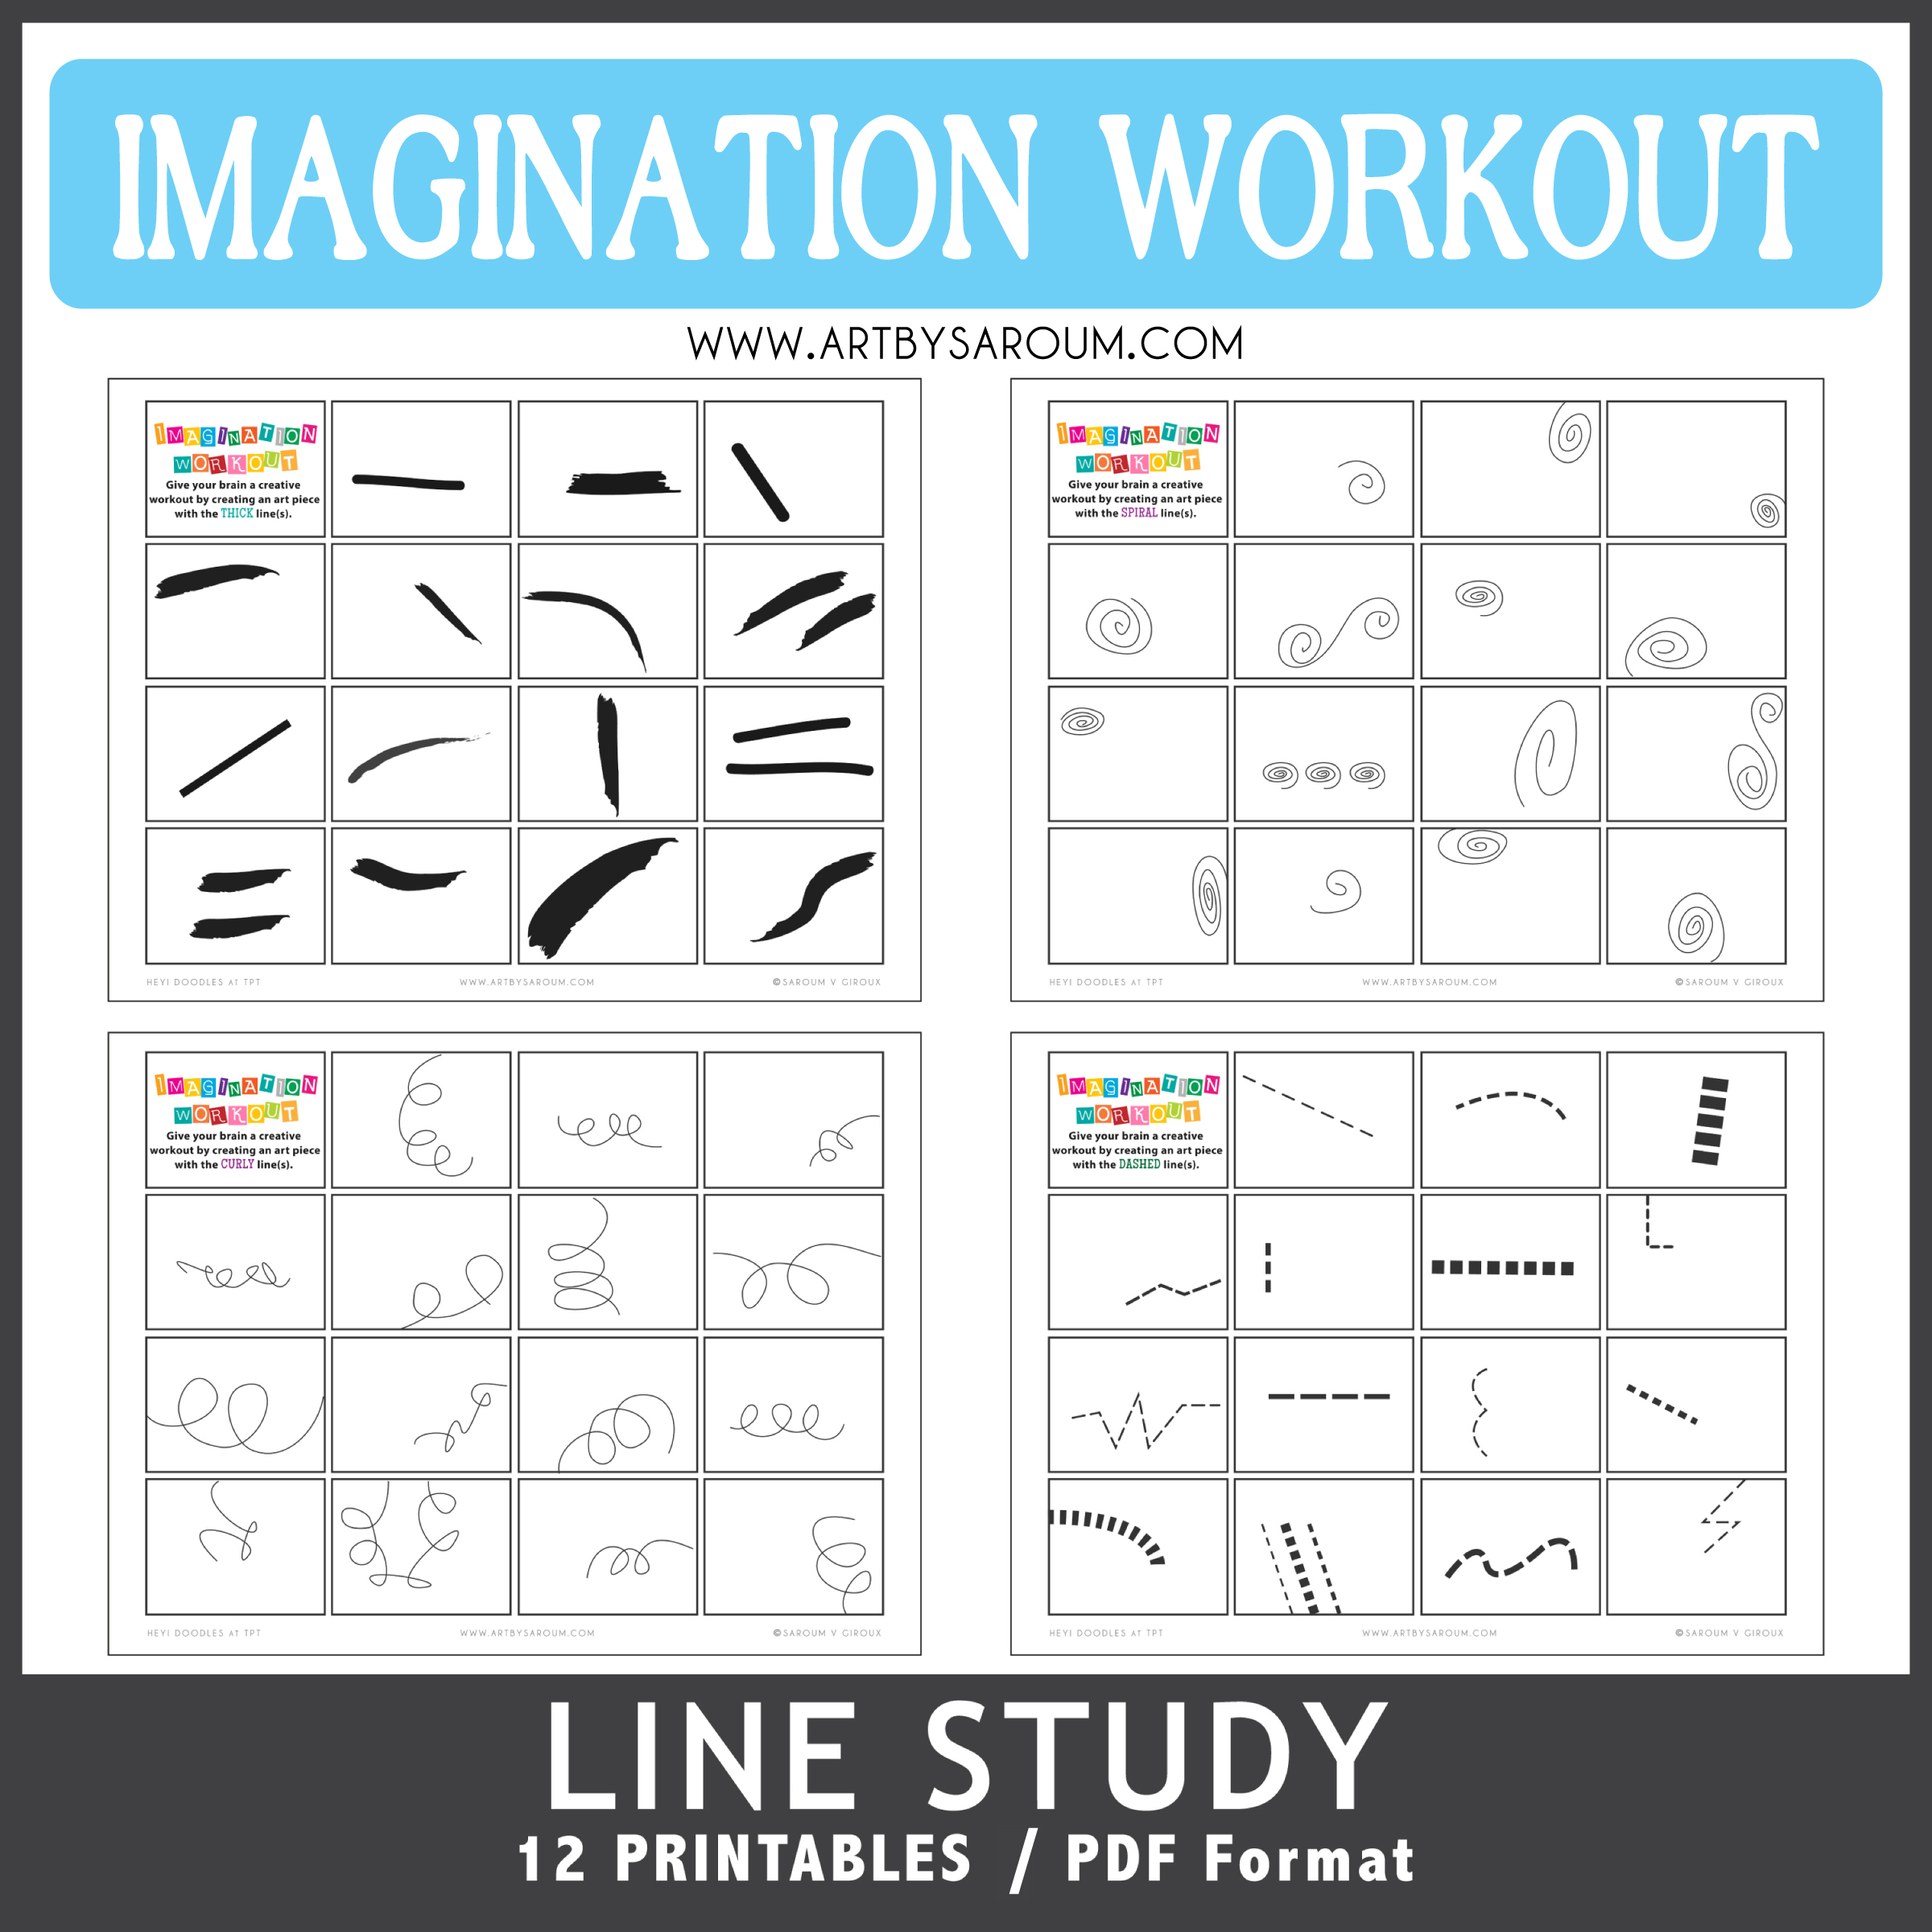 Lines Study Imagination Workout